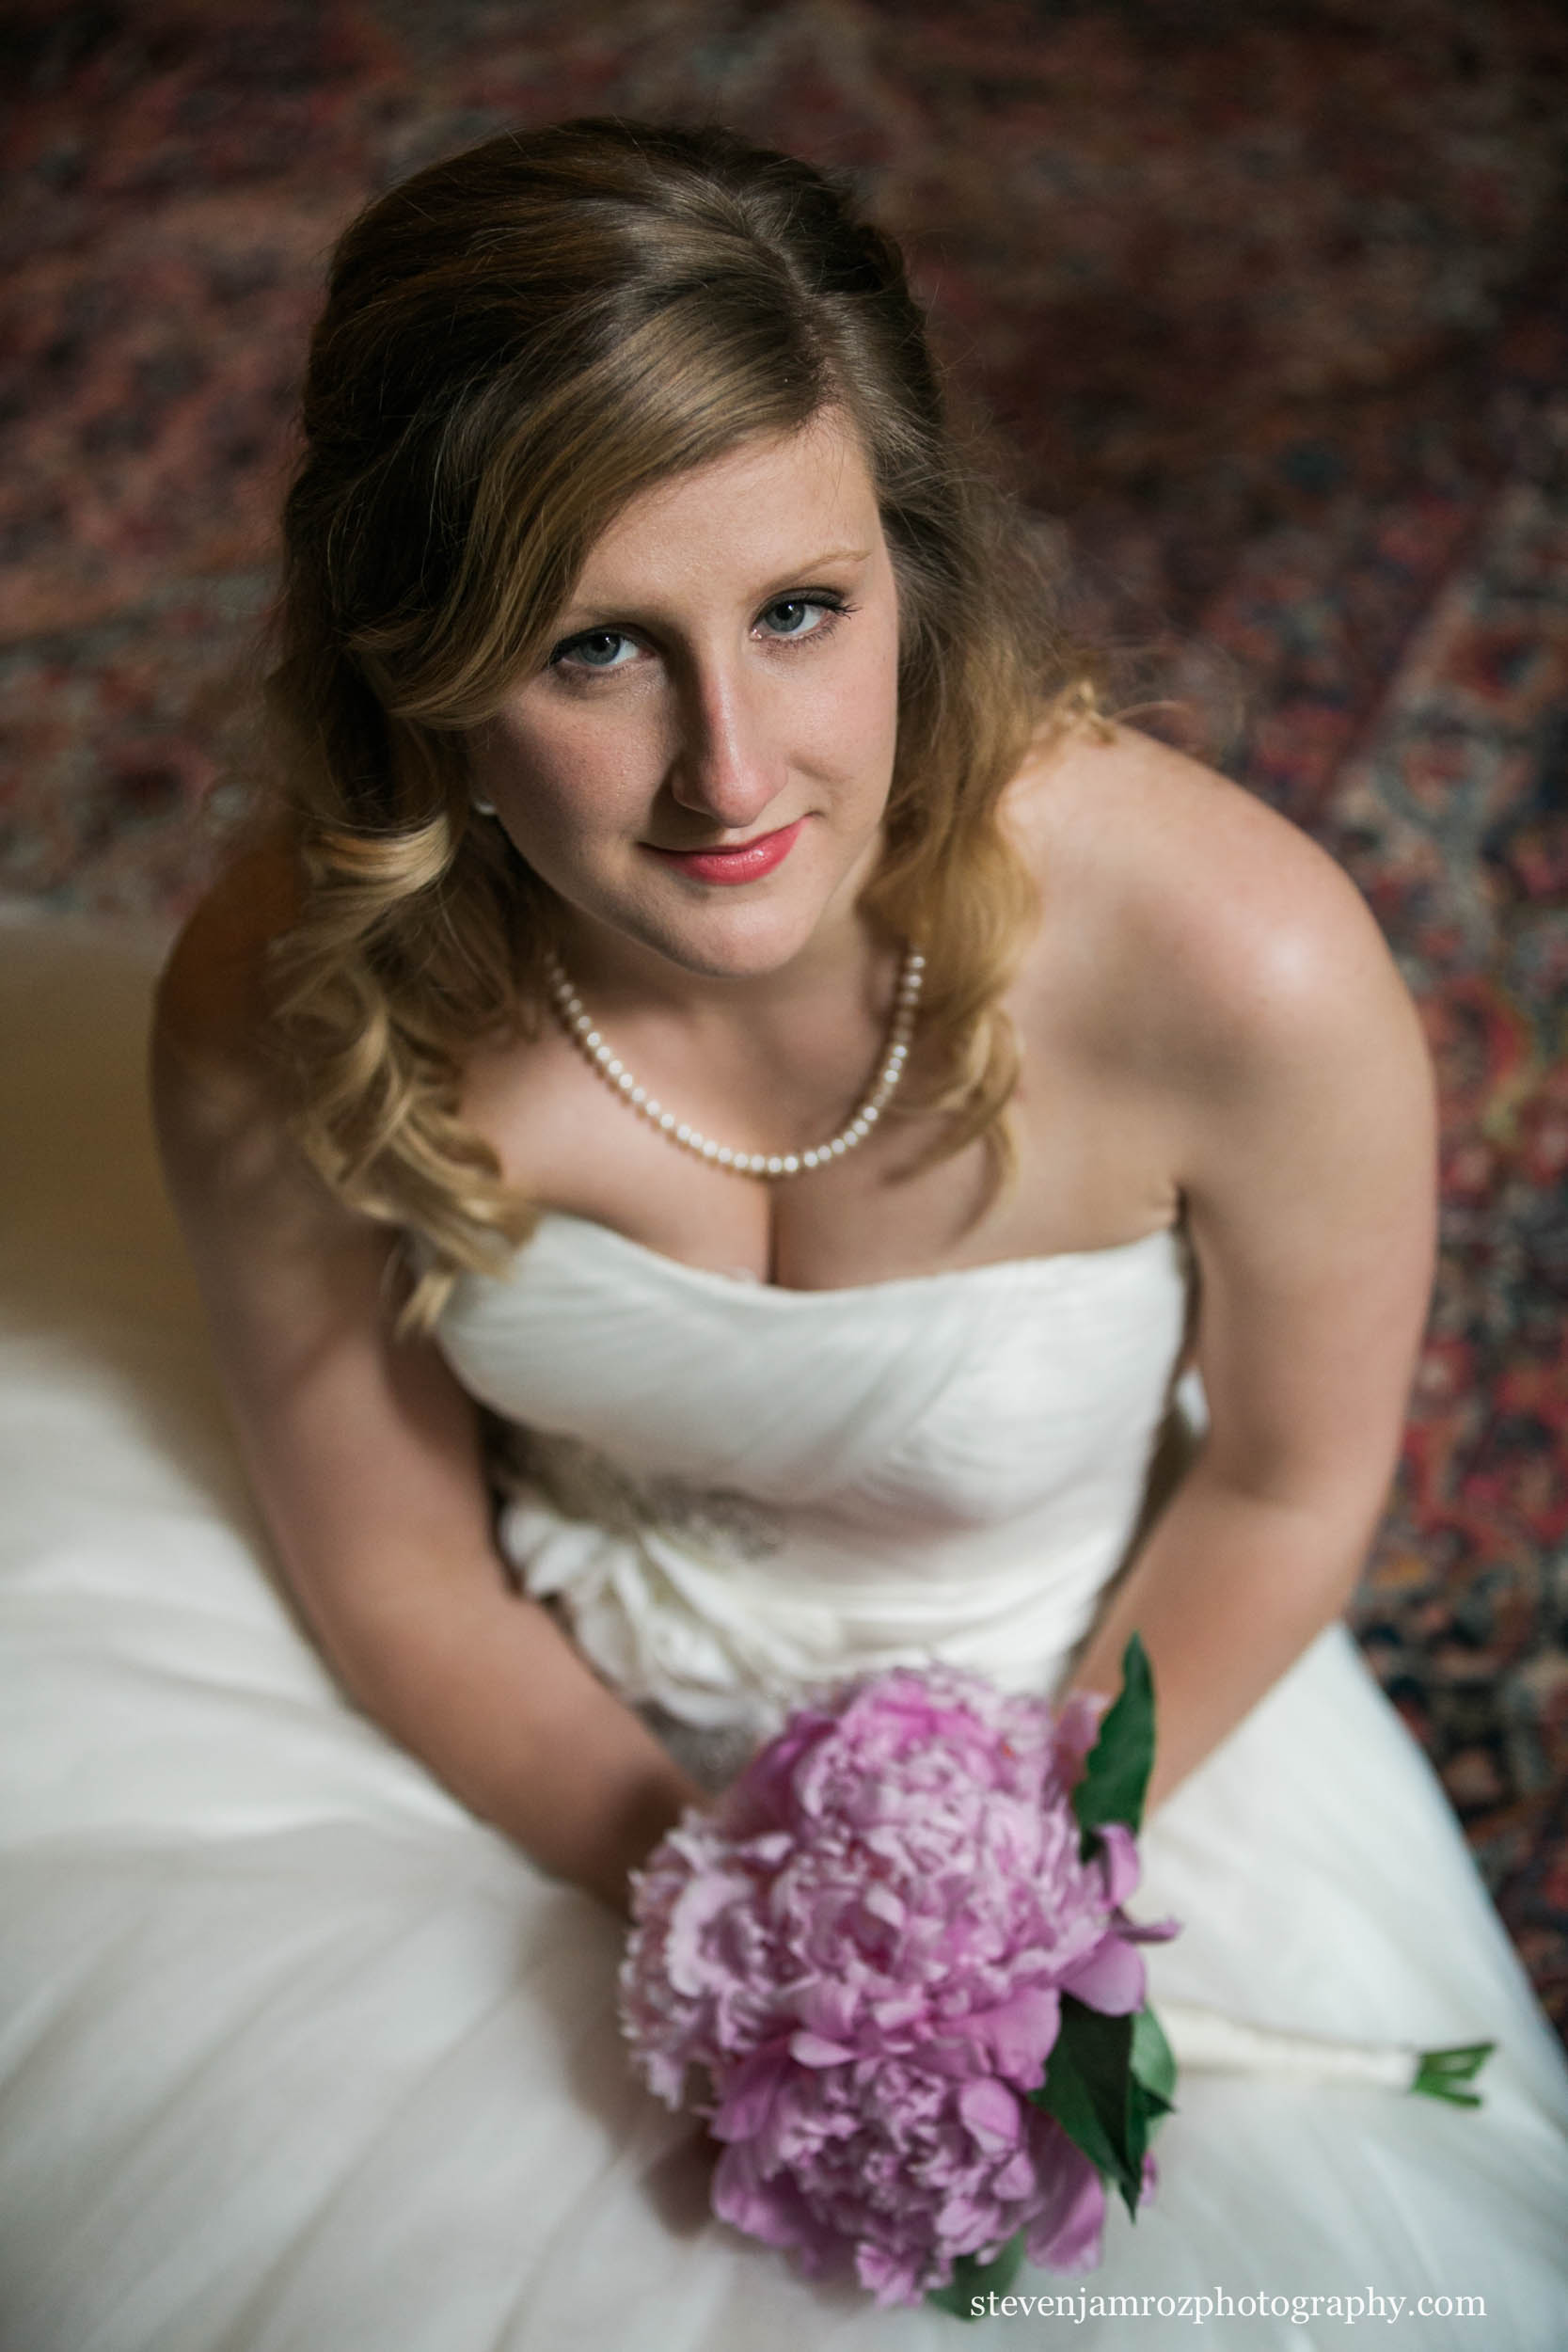 steven-jamroz-photography-peace-college-bridal-portrait-0021.jpg